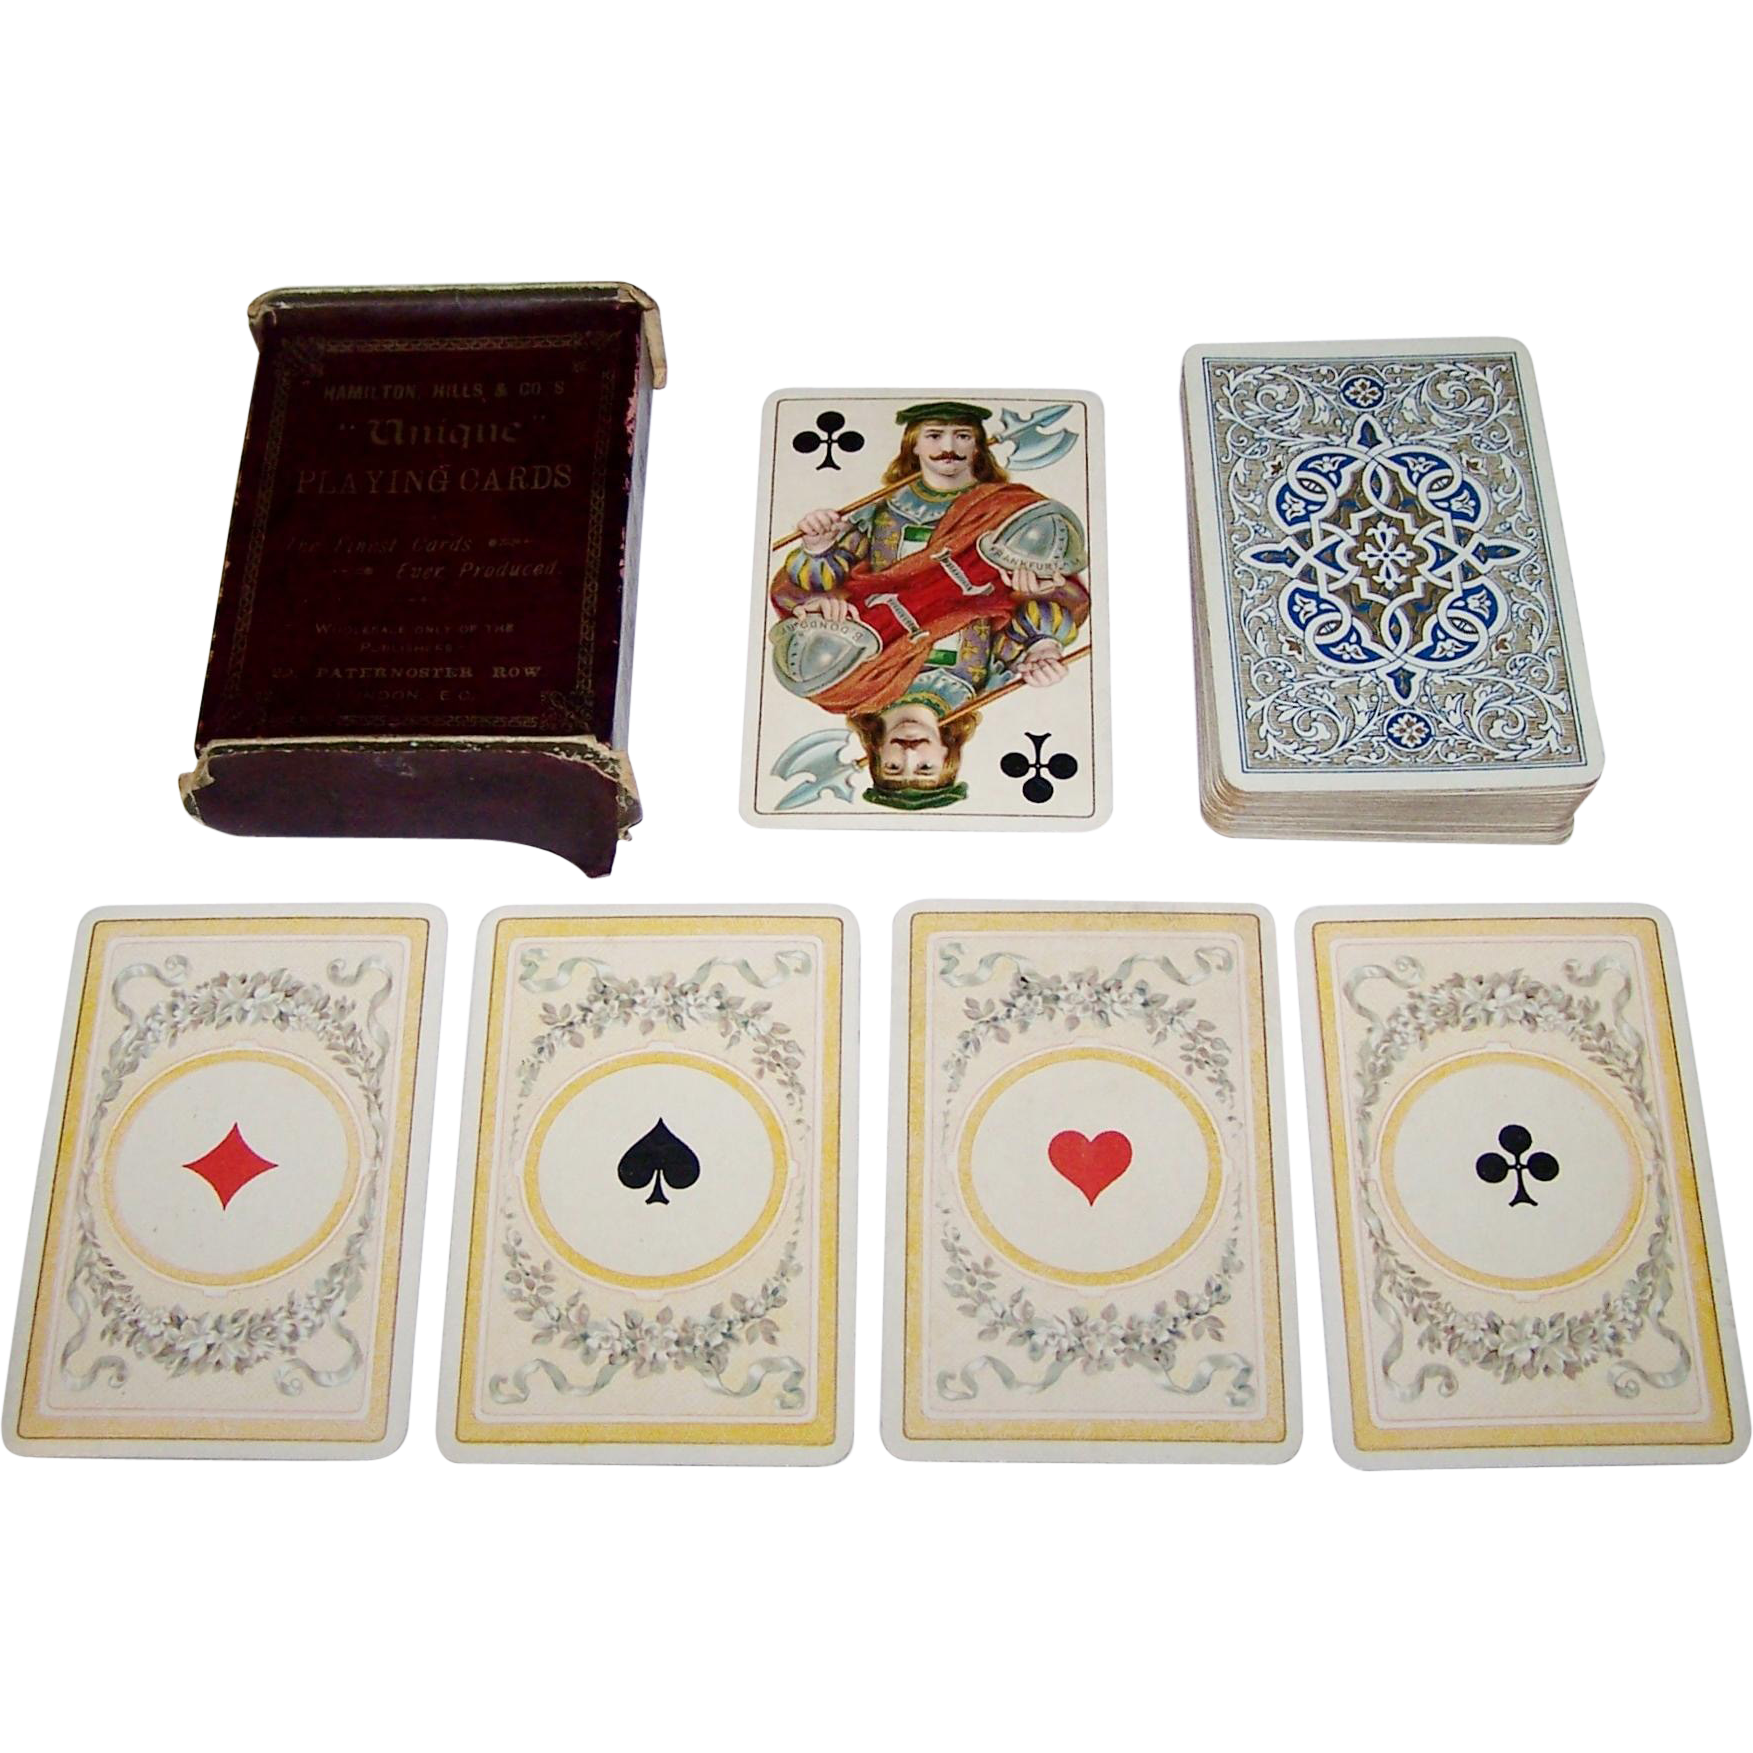 "Dondorf No. 150 ""Mittelalter"" (""Middle Ages"") Playing Cards, Hamilton, Hills & Co. ""Unique,"" c.1889-1905"